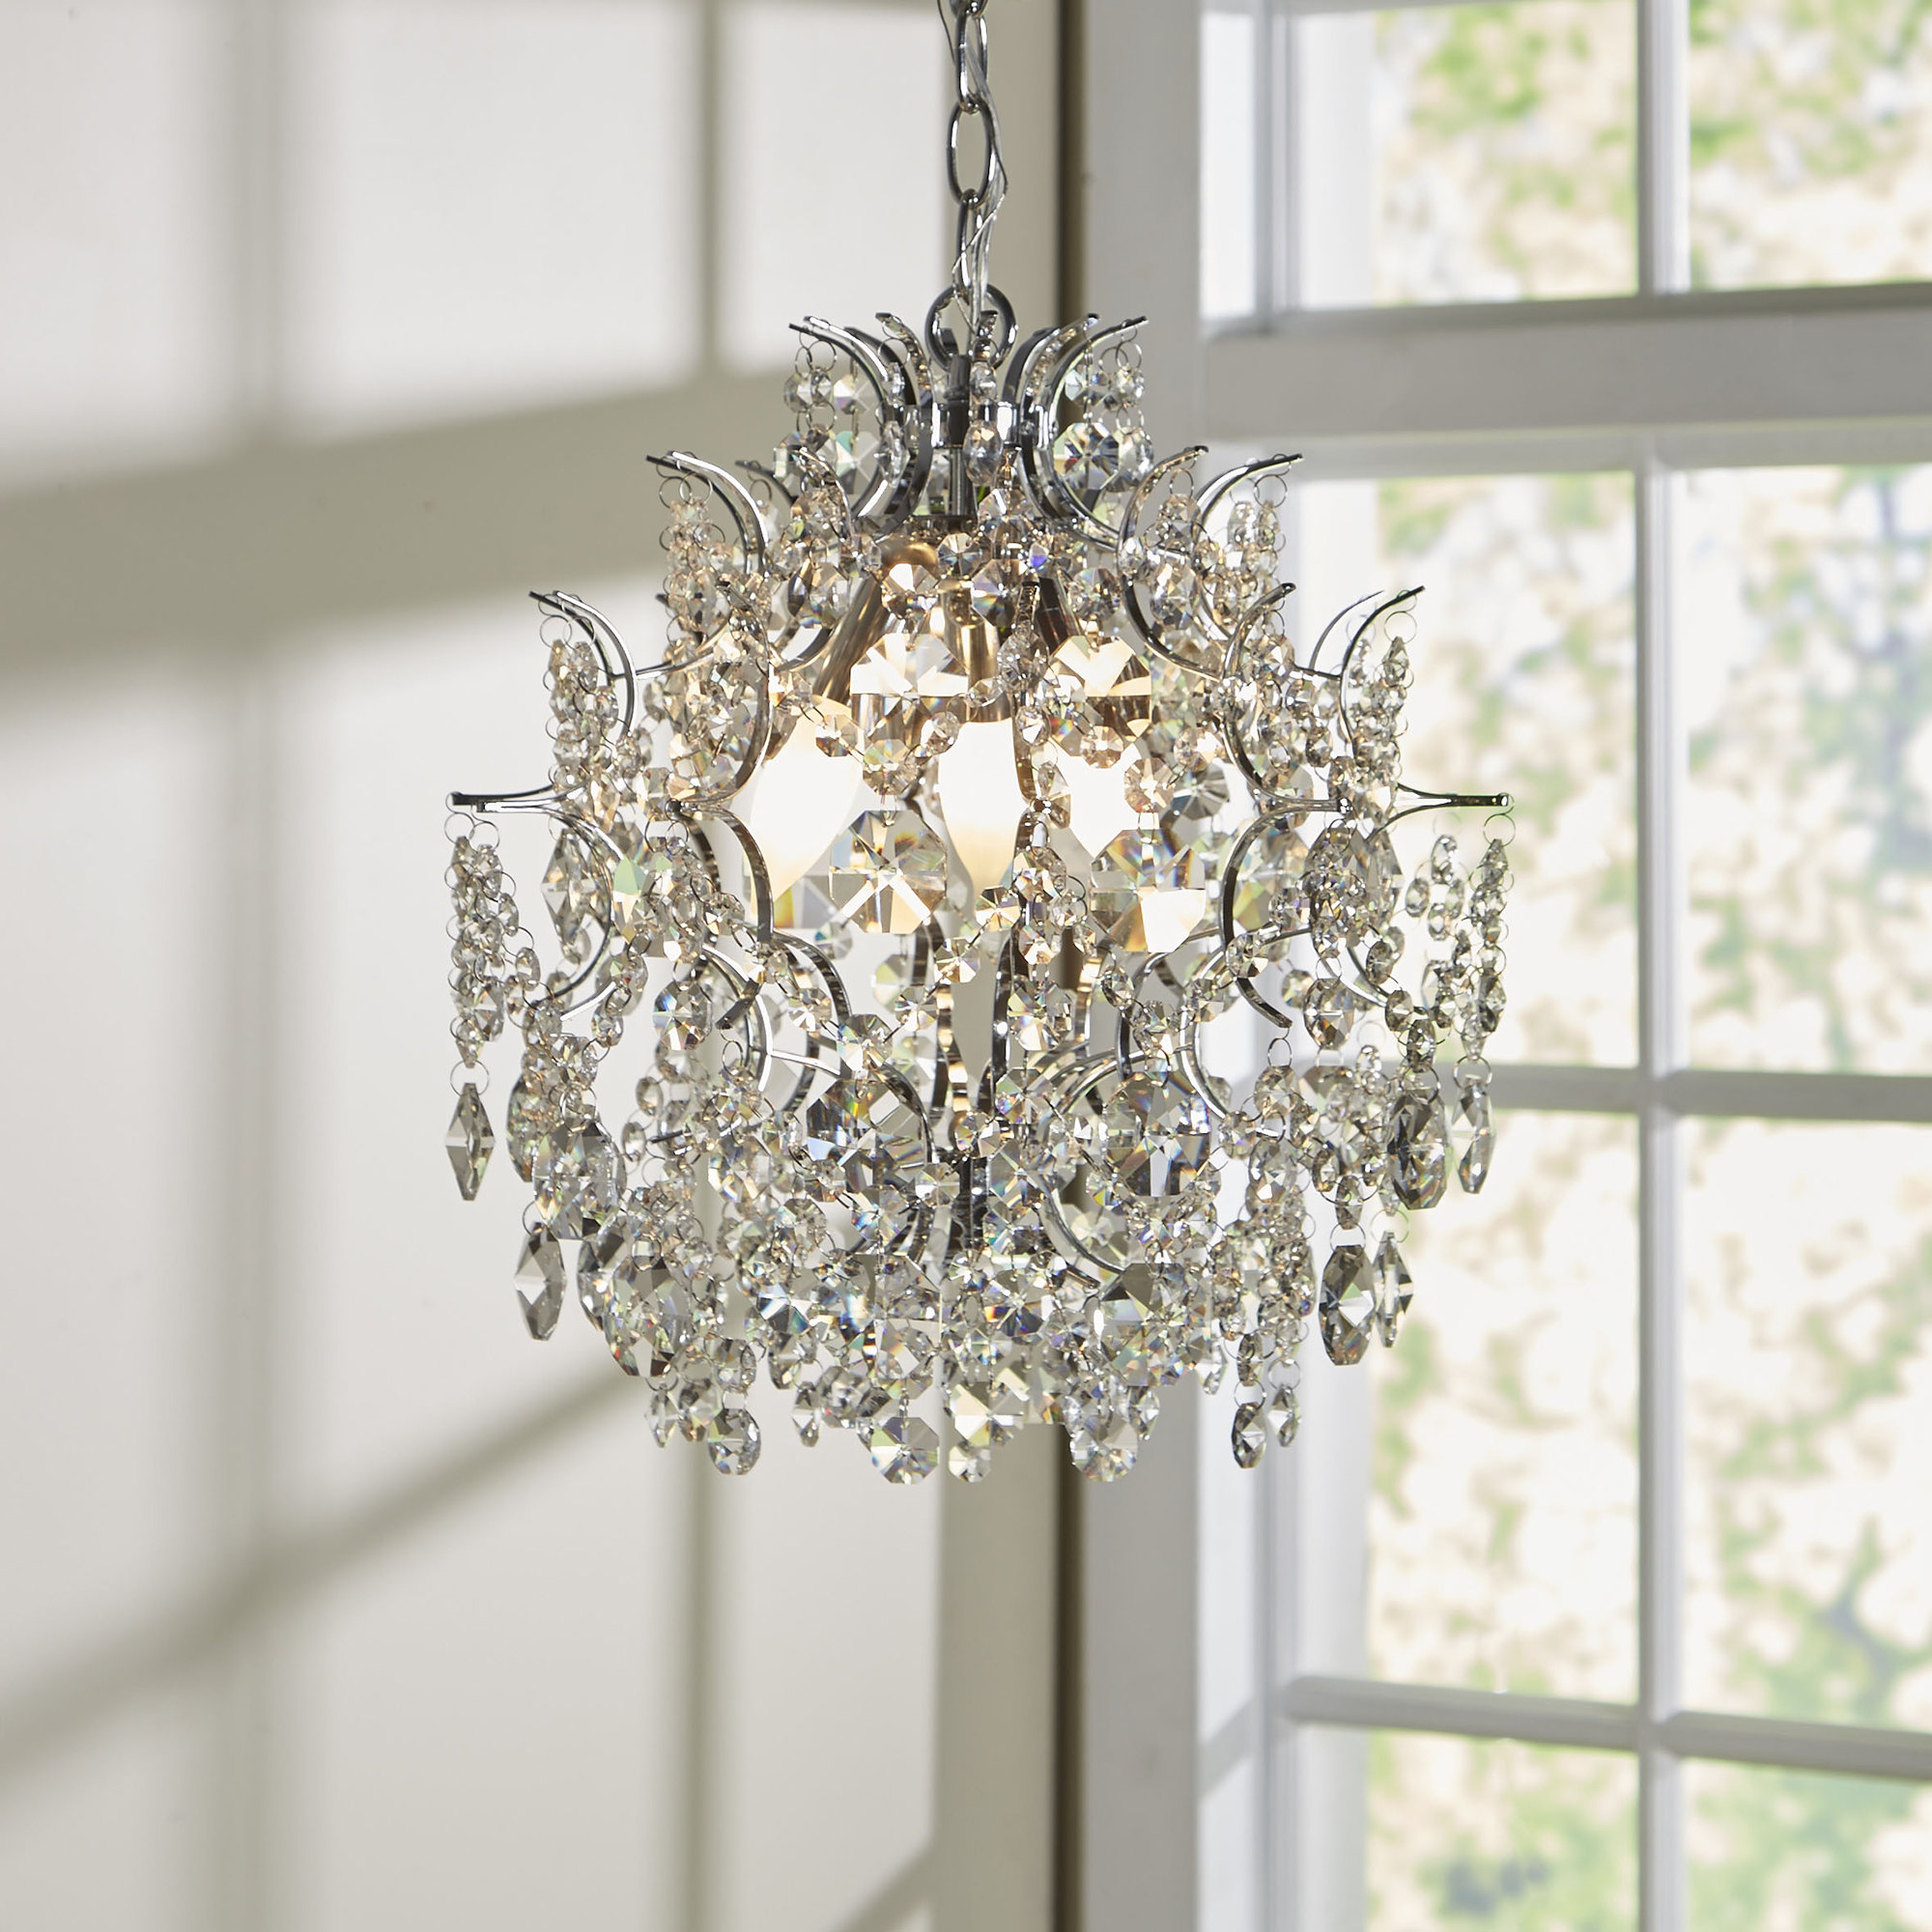 Willa Arlo Interiors Clea 3 Light Crystal Chandelier With Best And Newest Benedetto 5 Light Crystal Chandeliers (View 20 of 20)